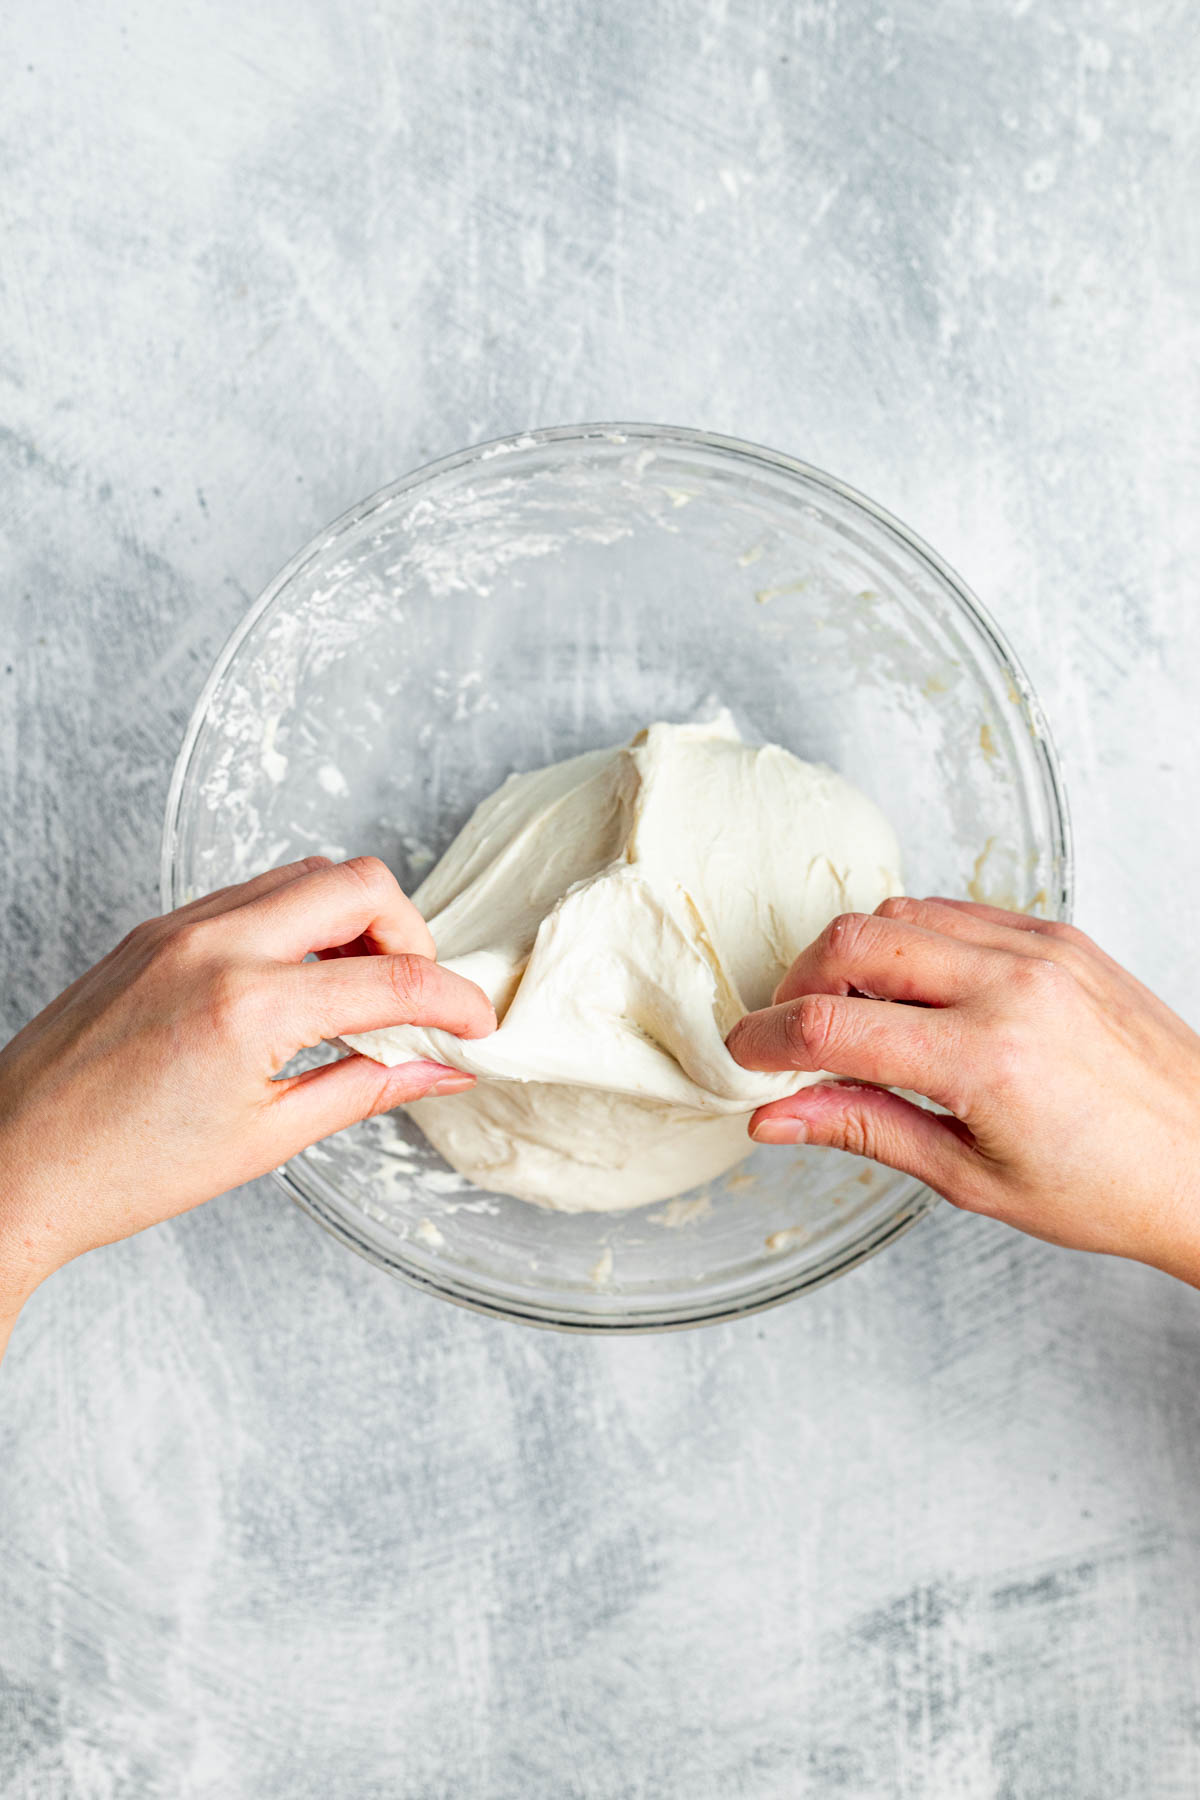 Stretching and folding dough.